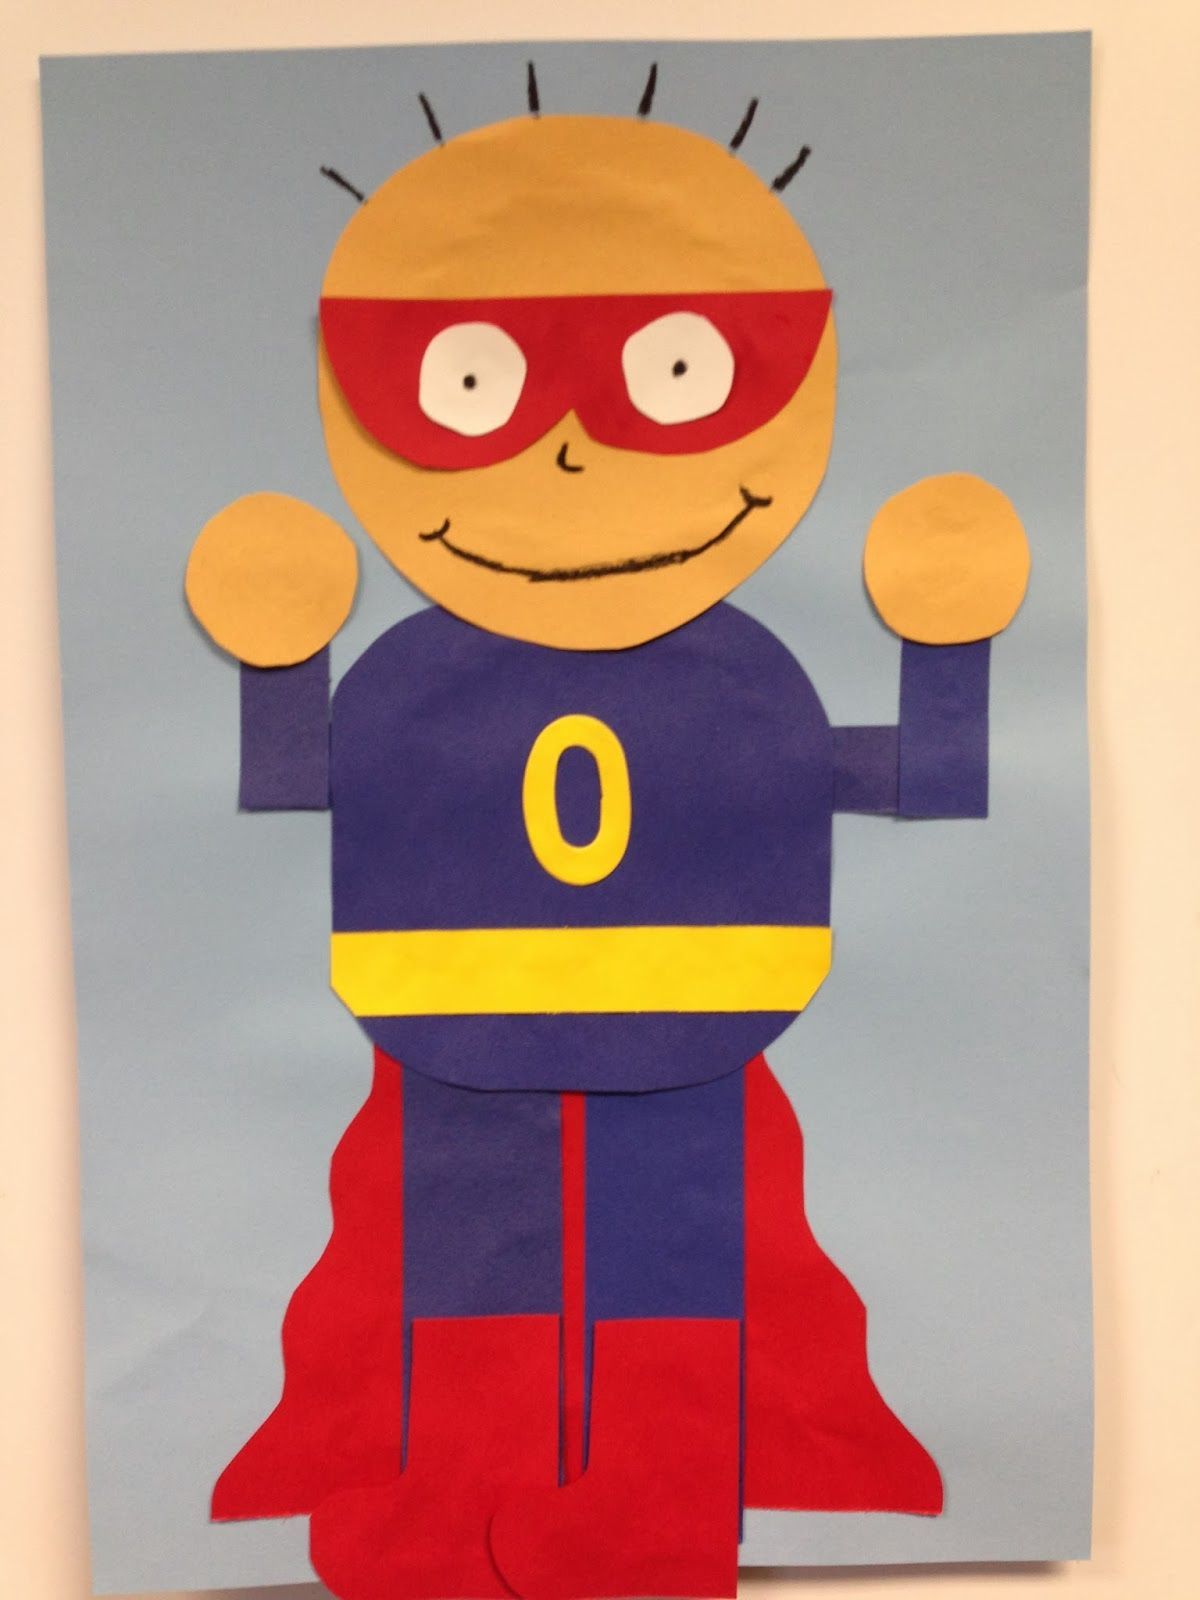 Download 100th Day of School (With images) | Hero crafts, Superhero ...